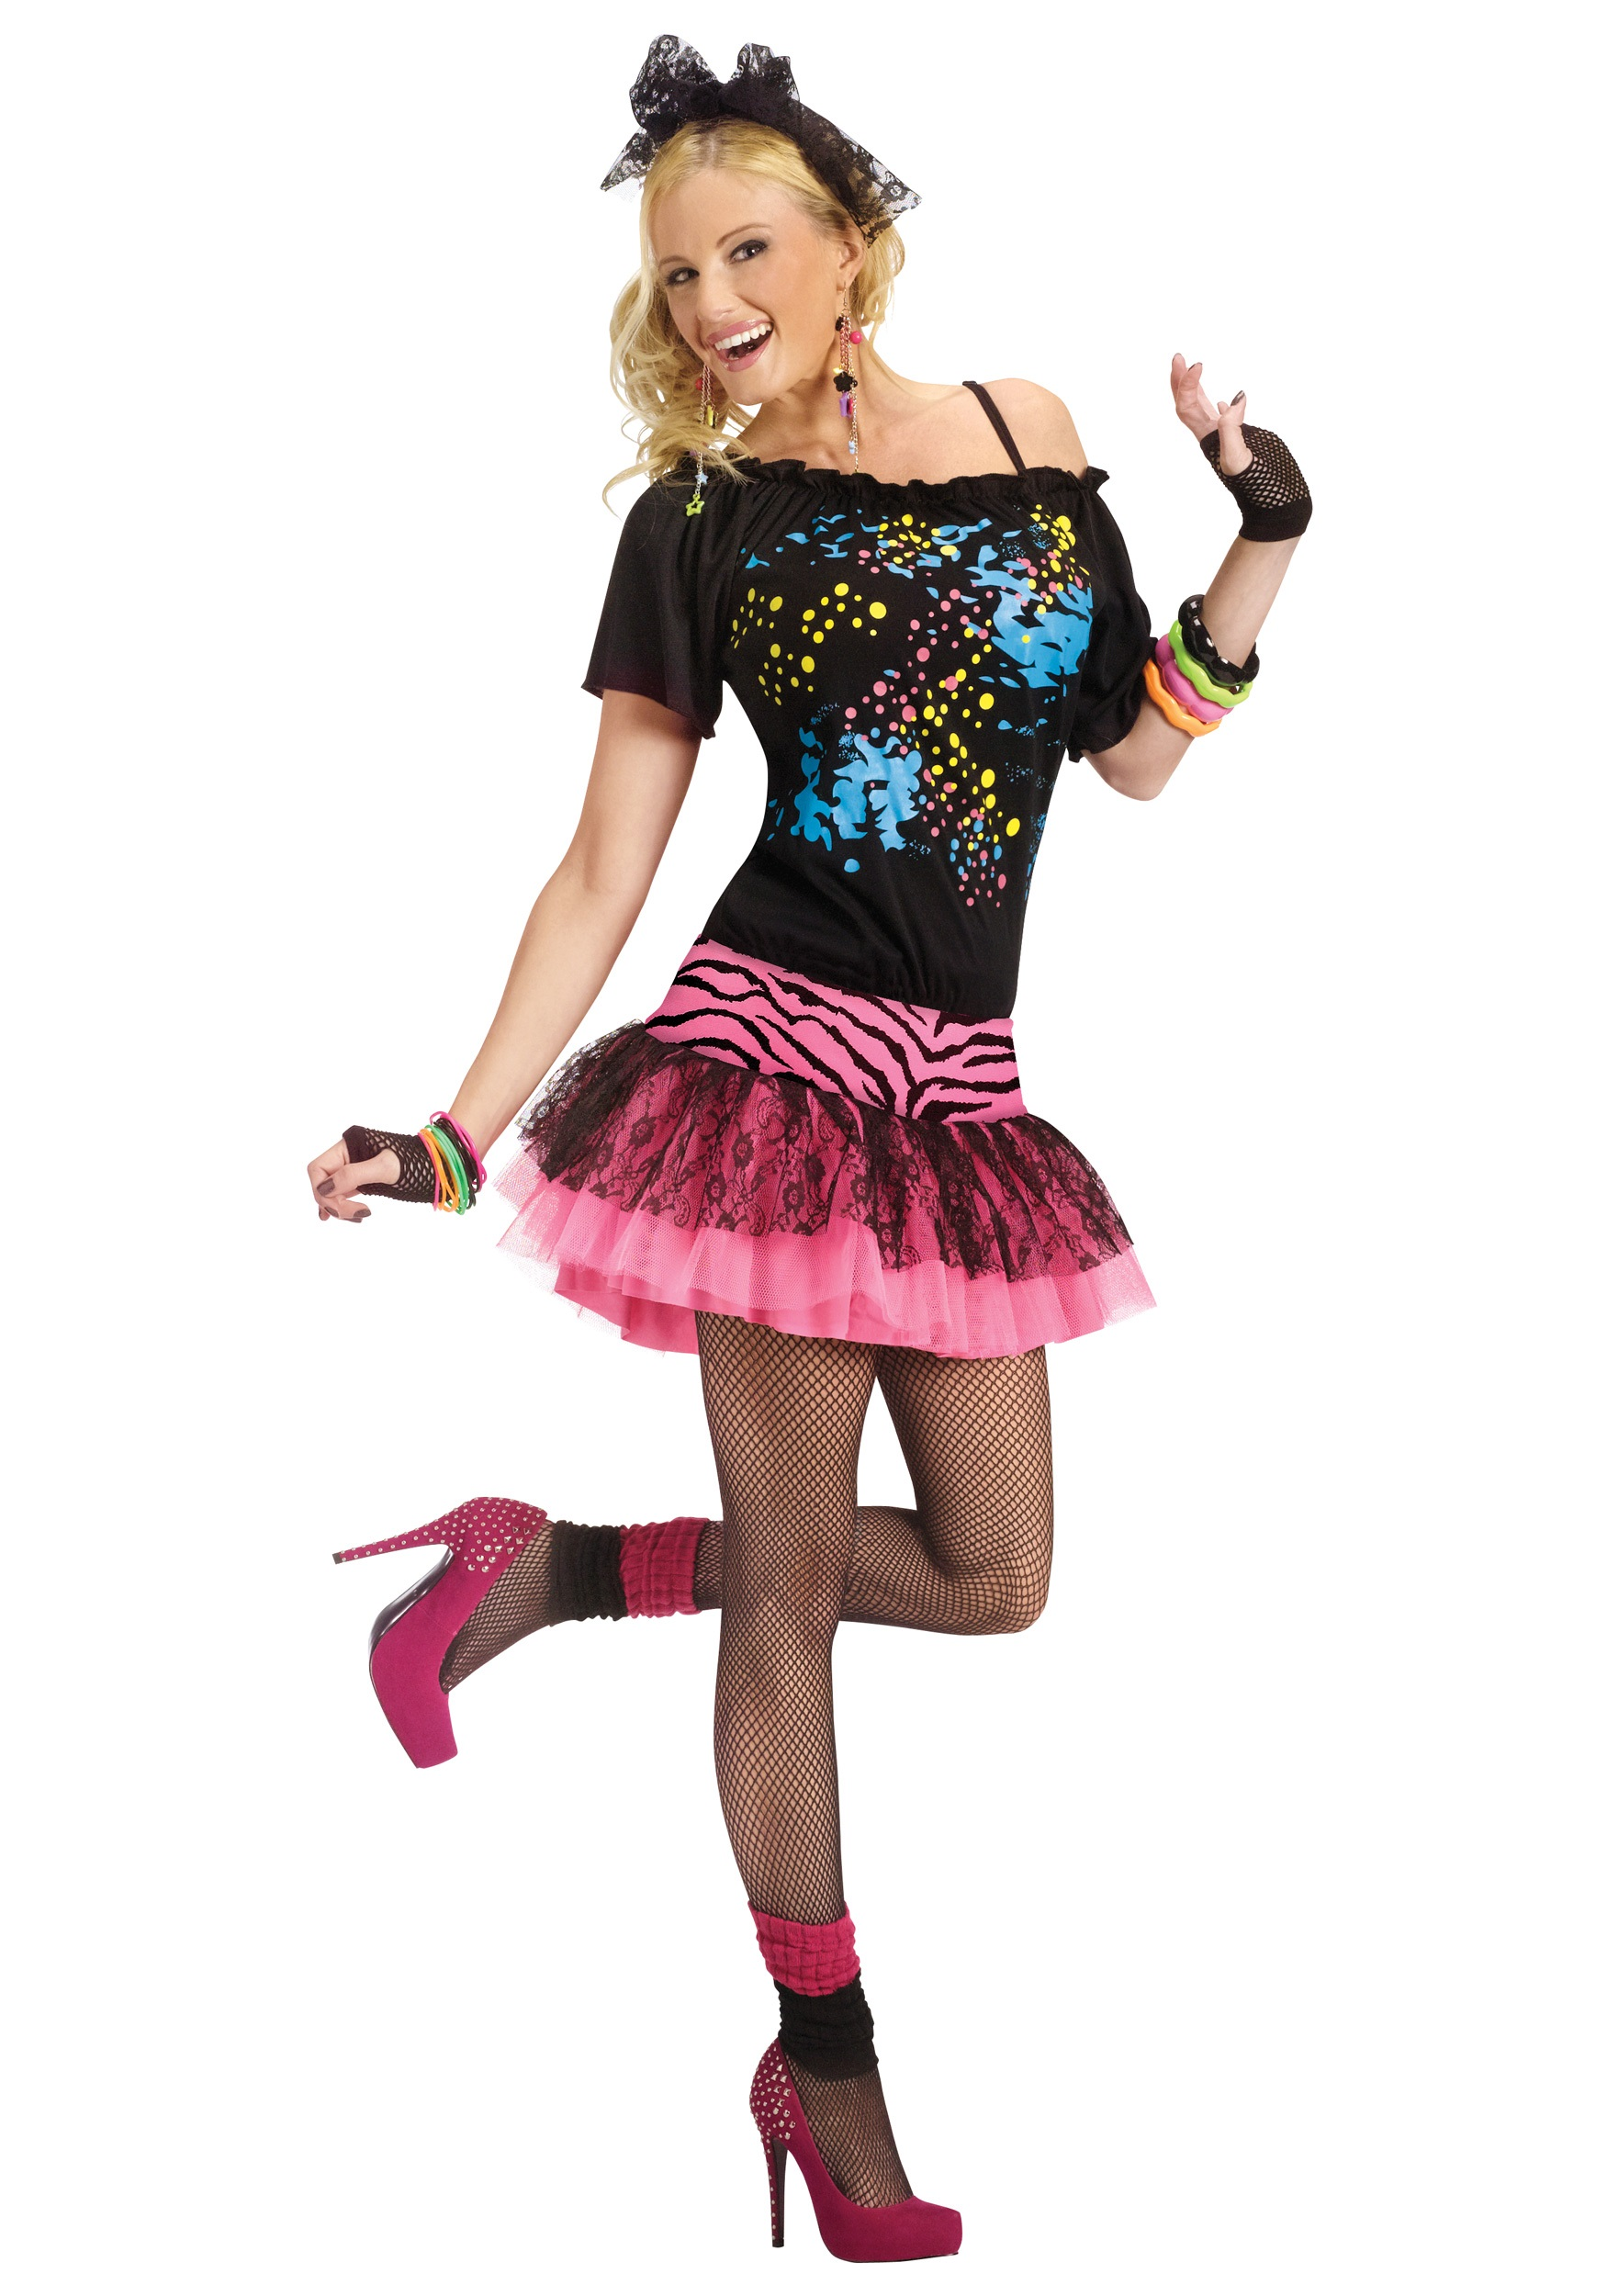 80's Fashion Trends For Women For Party Adult s Pop Party Costume